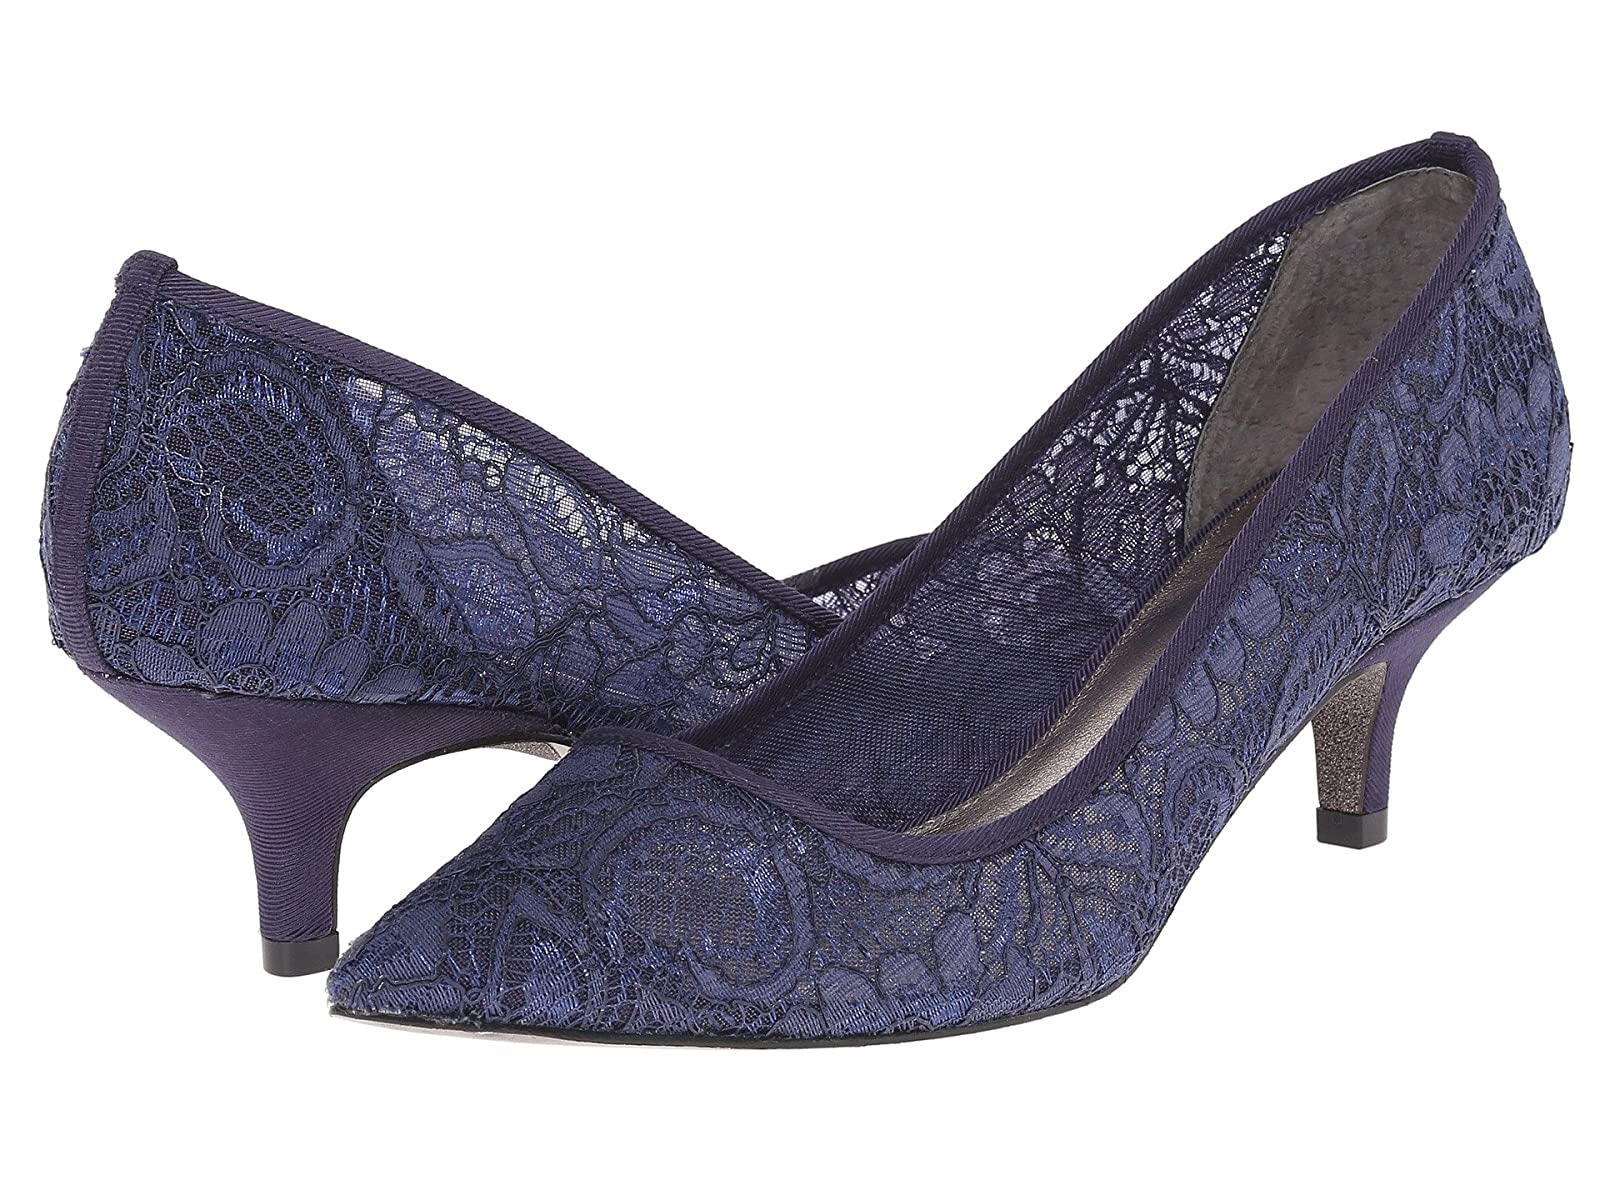 Adrianna Papell Lois LaceCheap and distinctive eye-catching shoes